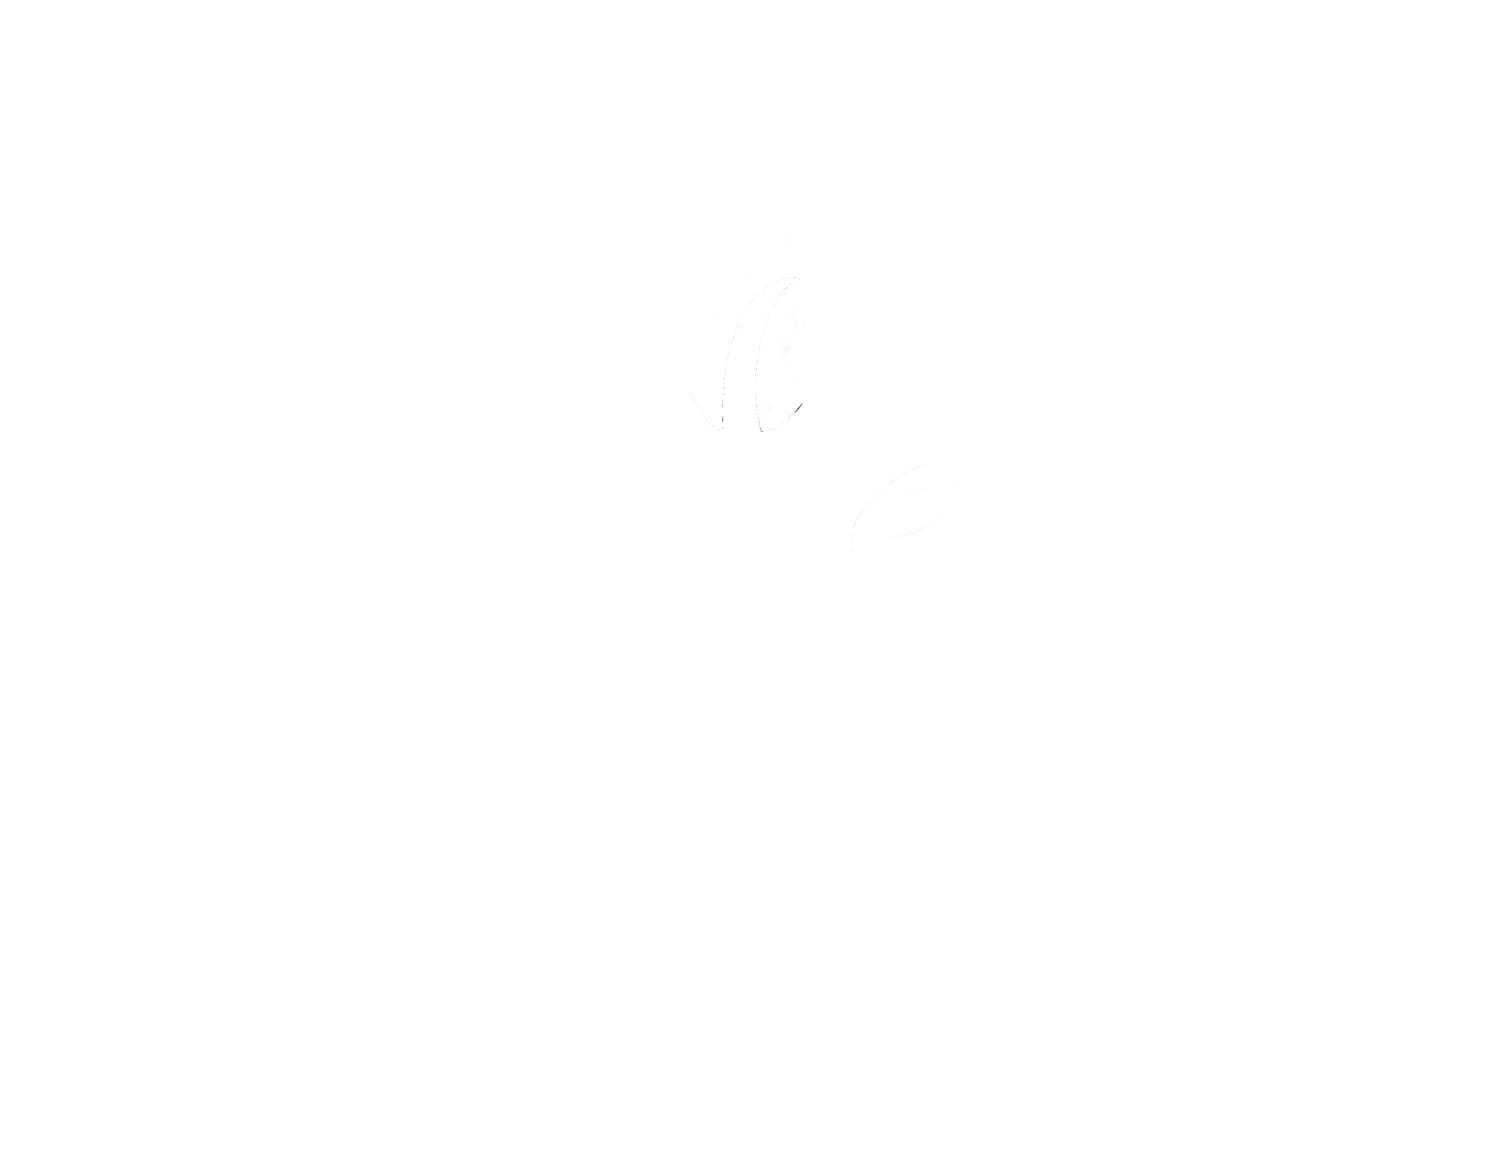 Co-Schooling — Greenhouse